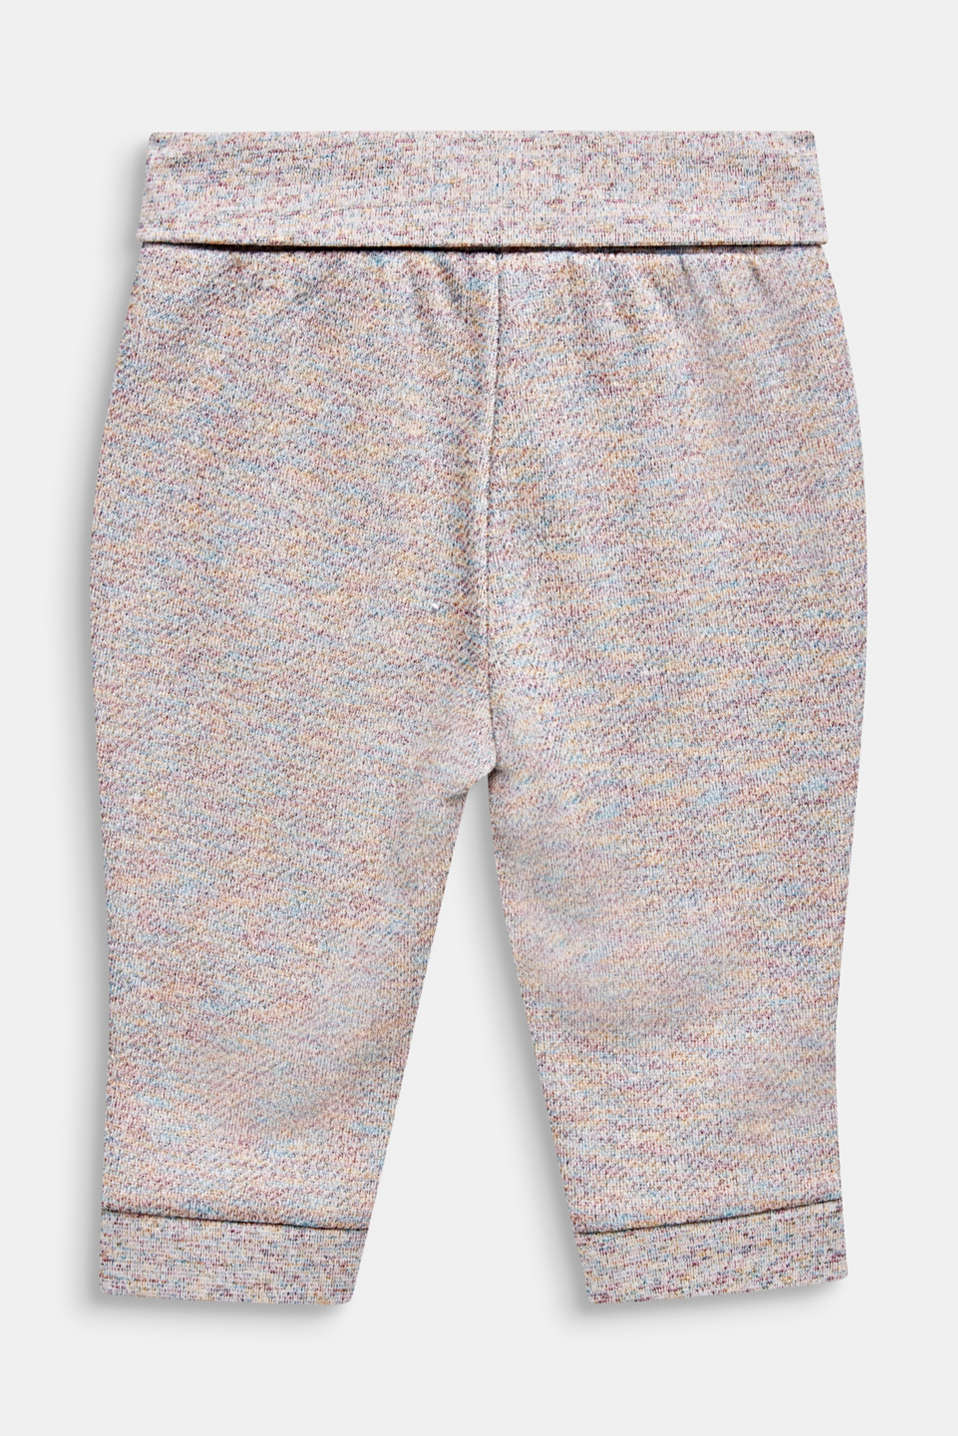 Tracksuit bottoms with a colourful glitter look, LCMULTICOLOR, detail image number 1